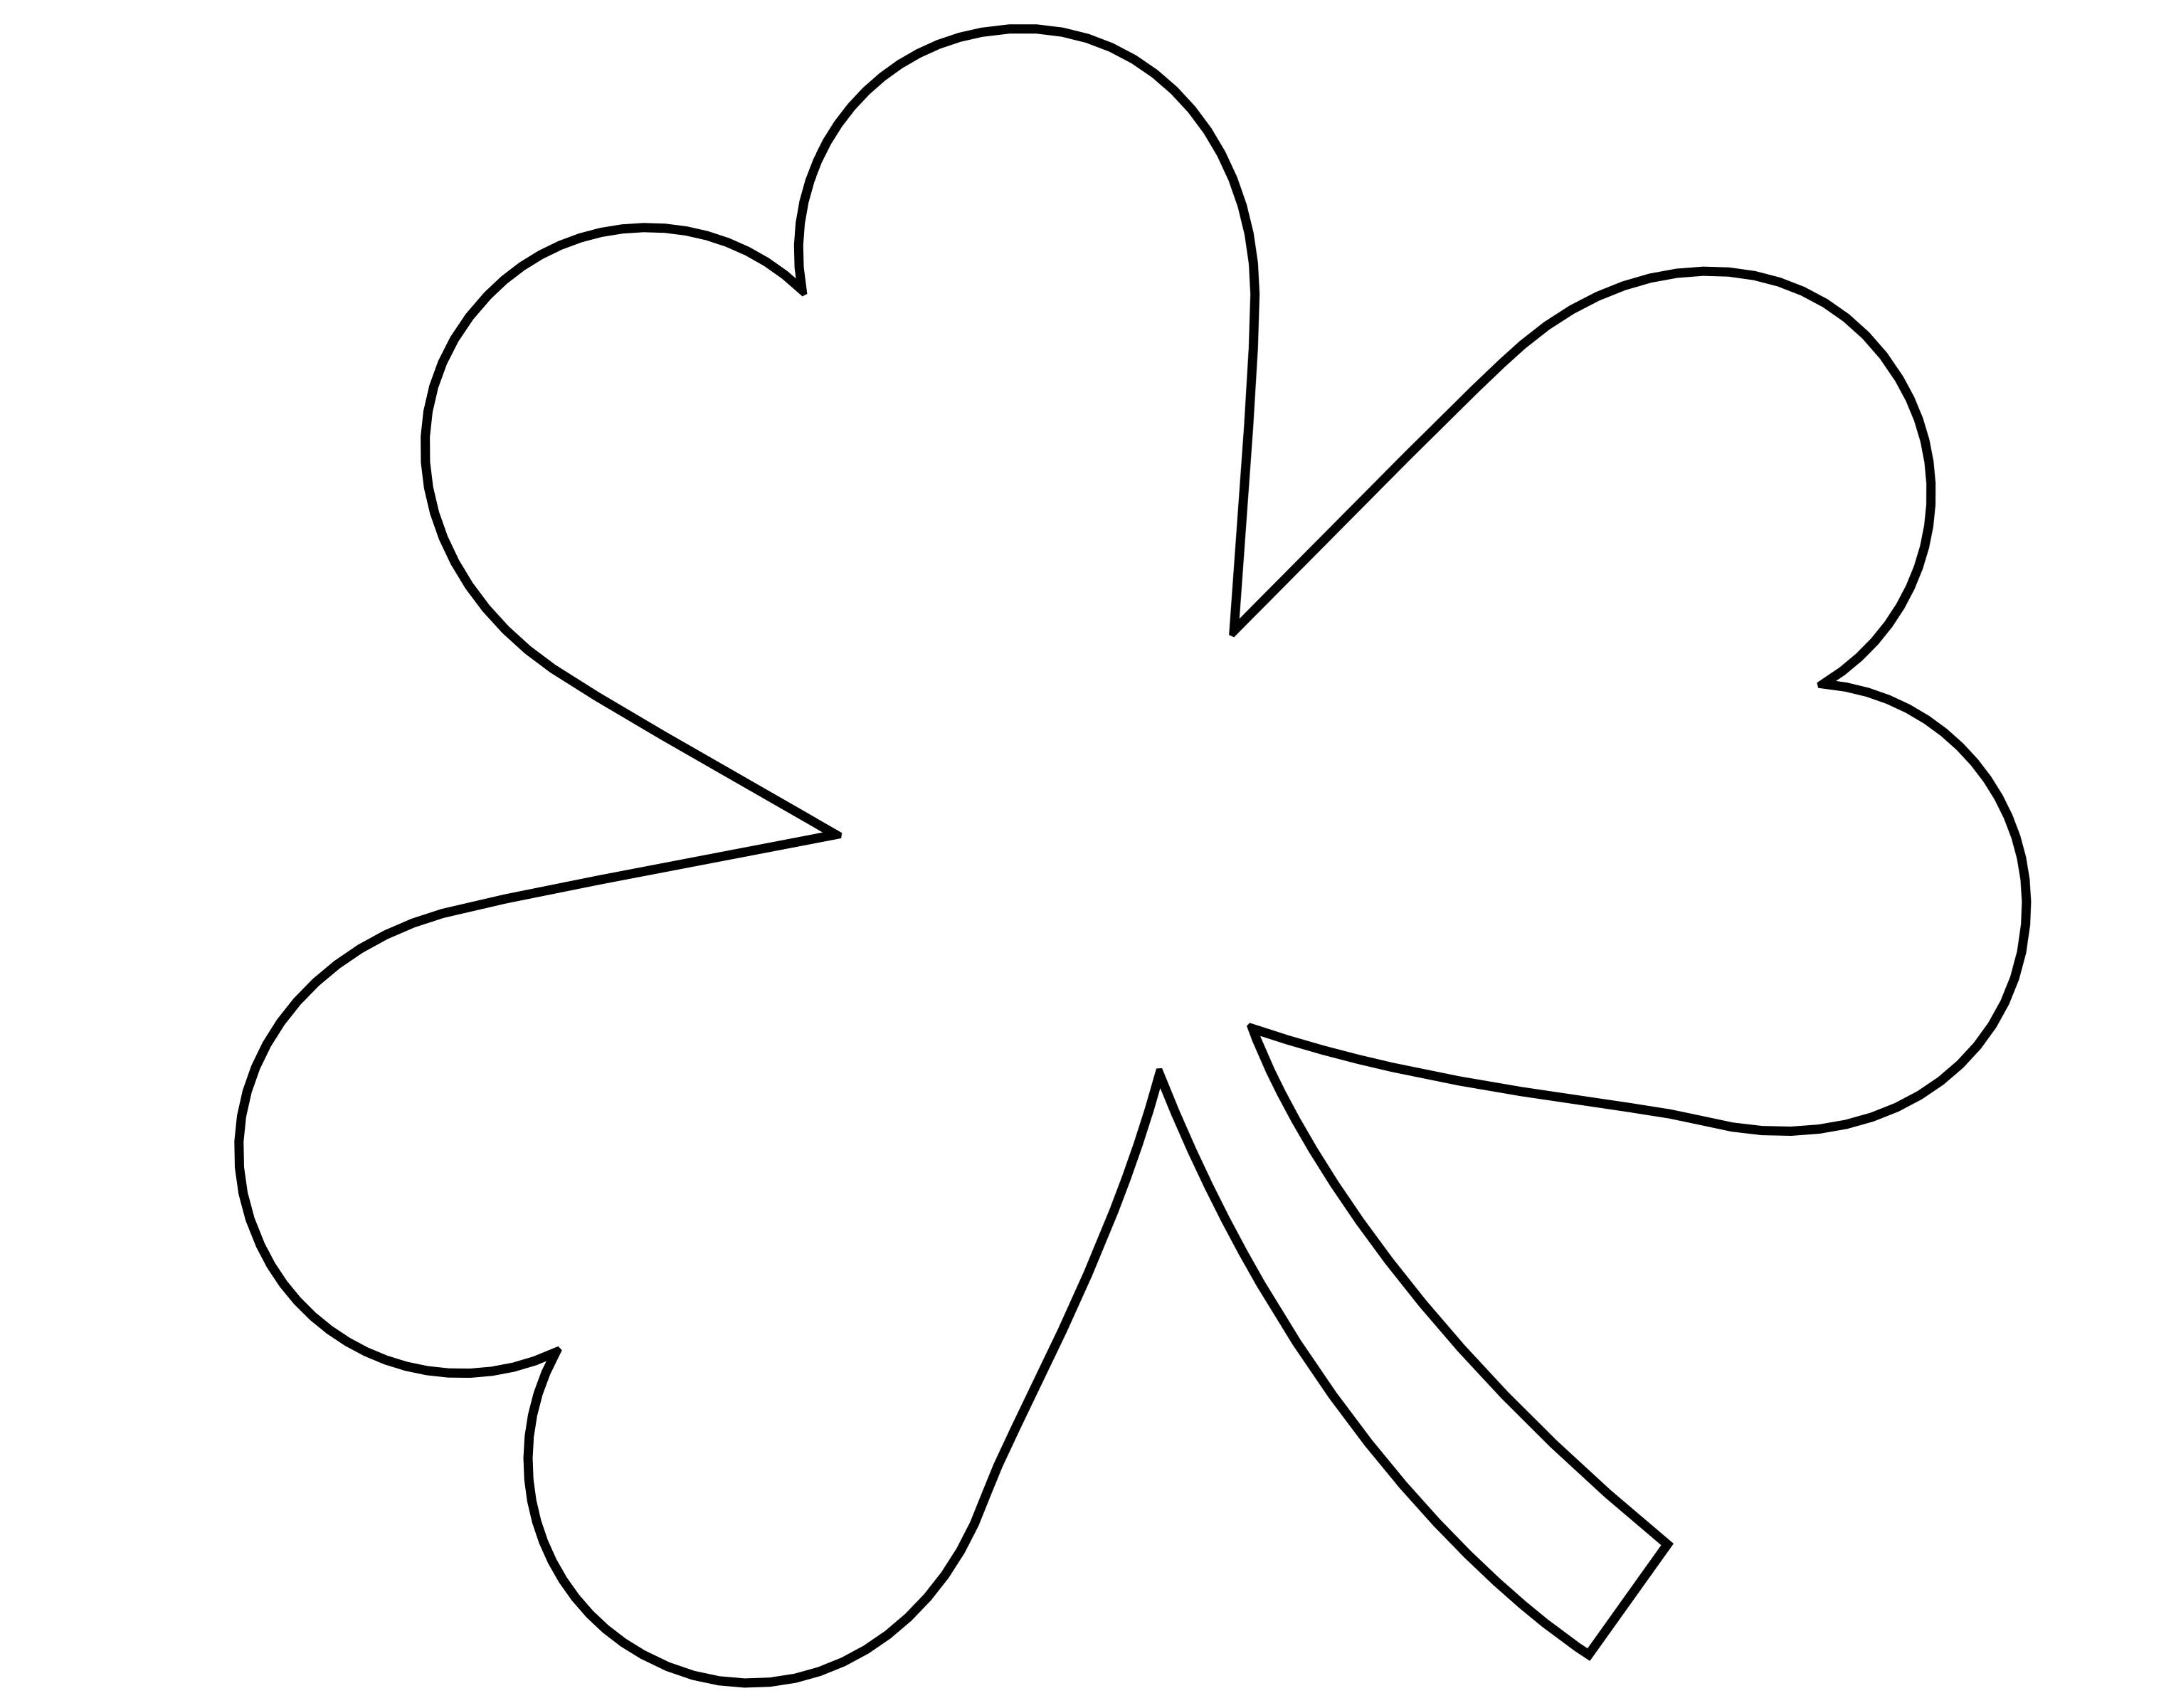 image about Printable Shamrock Images titled 5 Excellent Shots of 4 Leaf Shamrock Template Printable - St